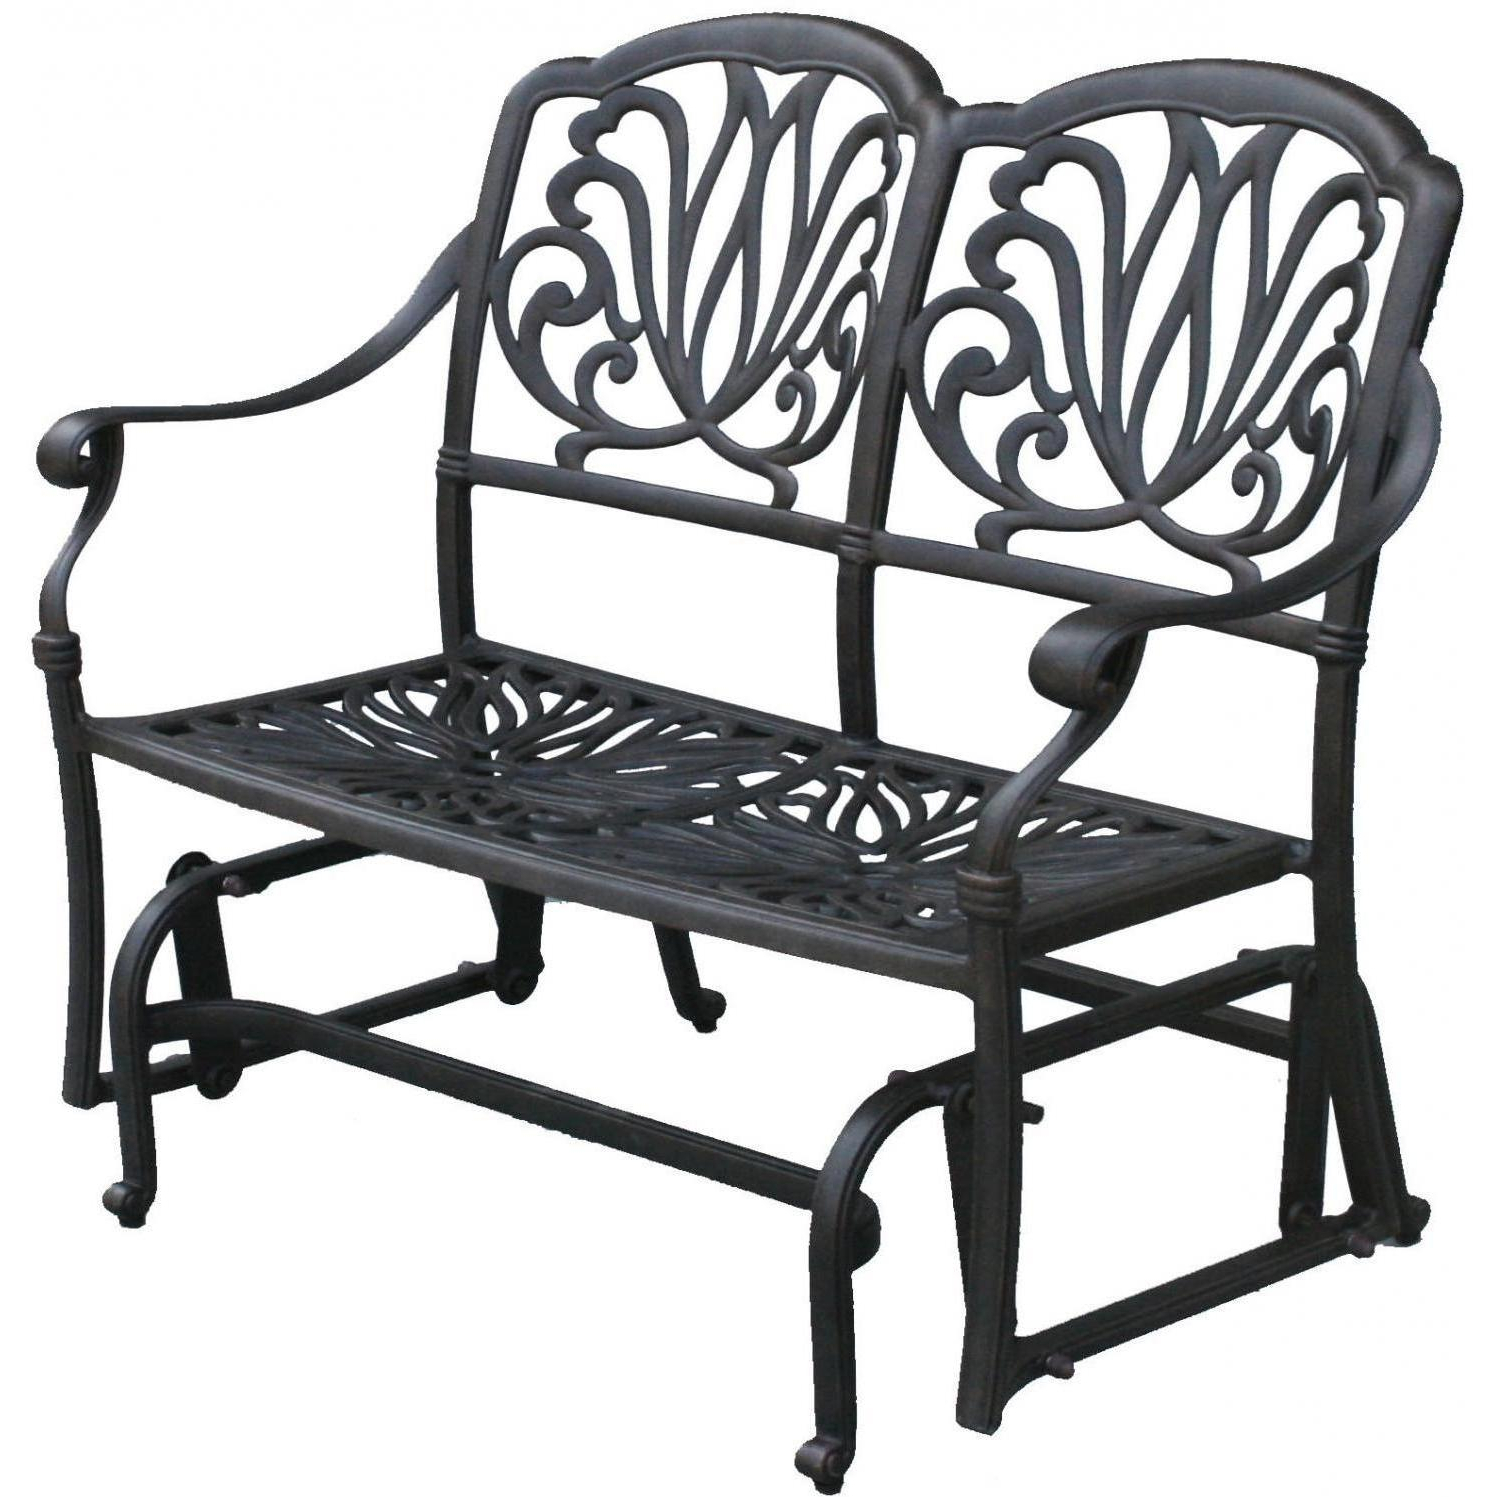 Darlee Elisabeth 2 Piece Cast Aluminum Patio Bench Glider Intended For Fashionable Black Steel Patio Swing Glider Benches Powder Coated (View 10 of 30)